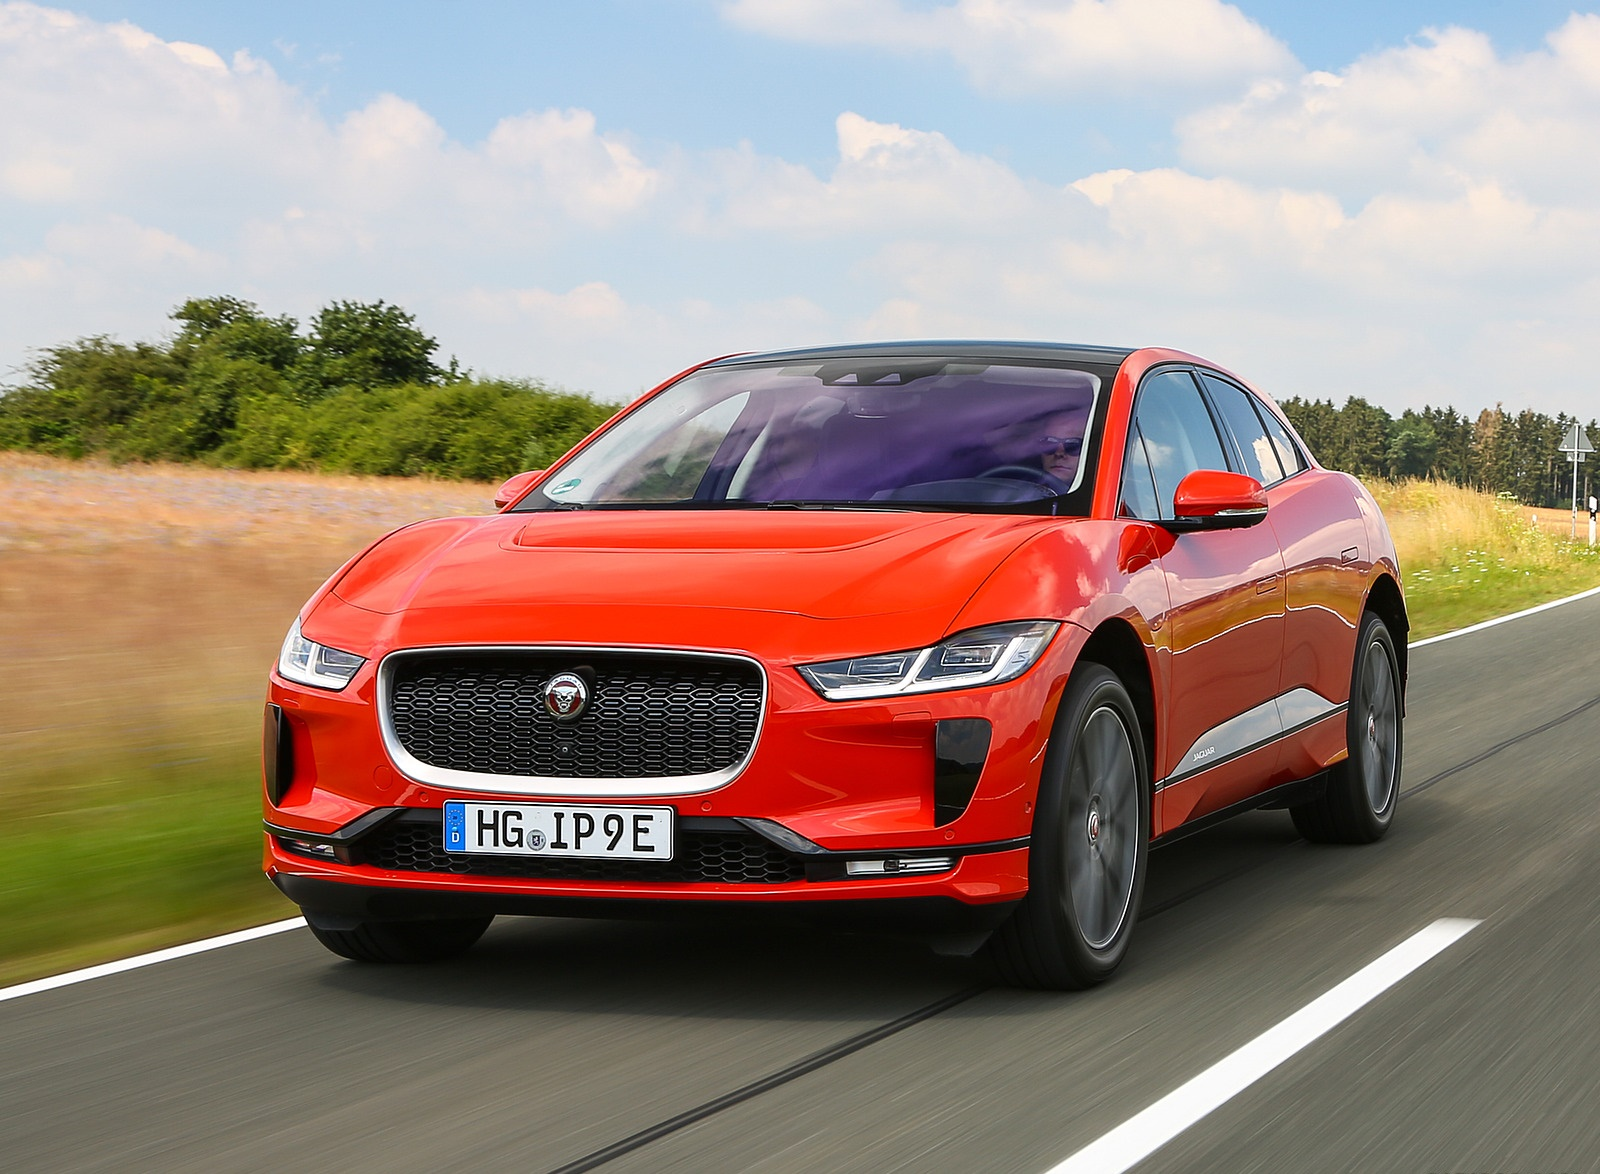 2019 Jaguar I-PACE EV400 AWD HSE First Edition (Color: Photon Red) Front Three-Quarter Wallpapers (10)